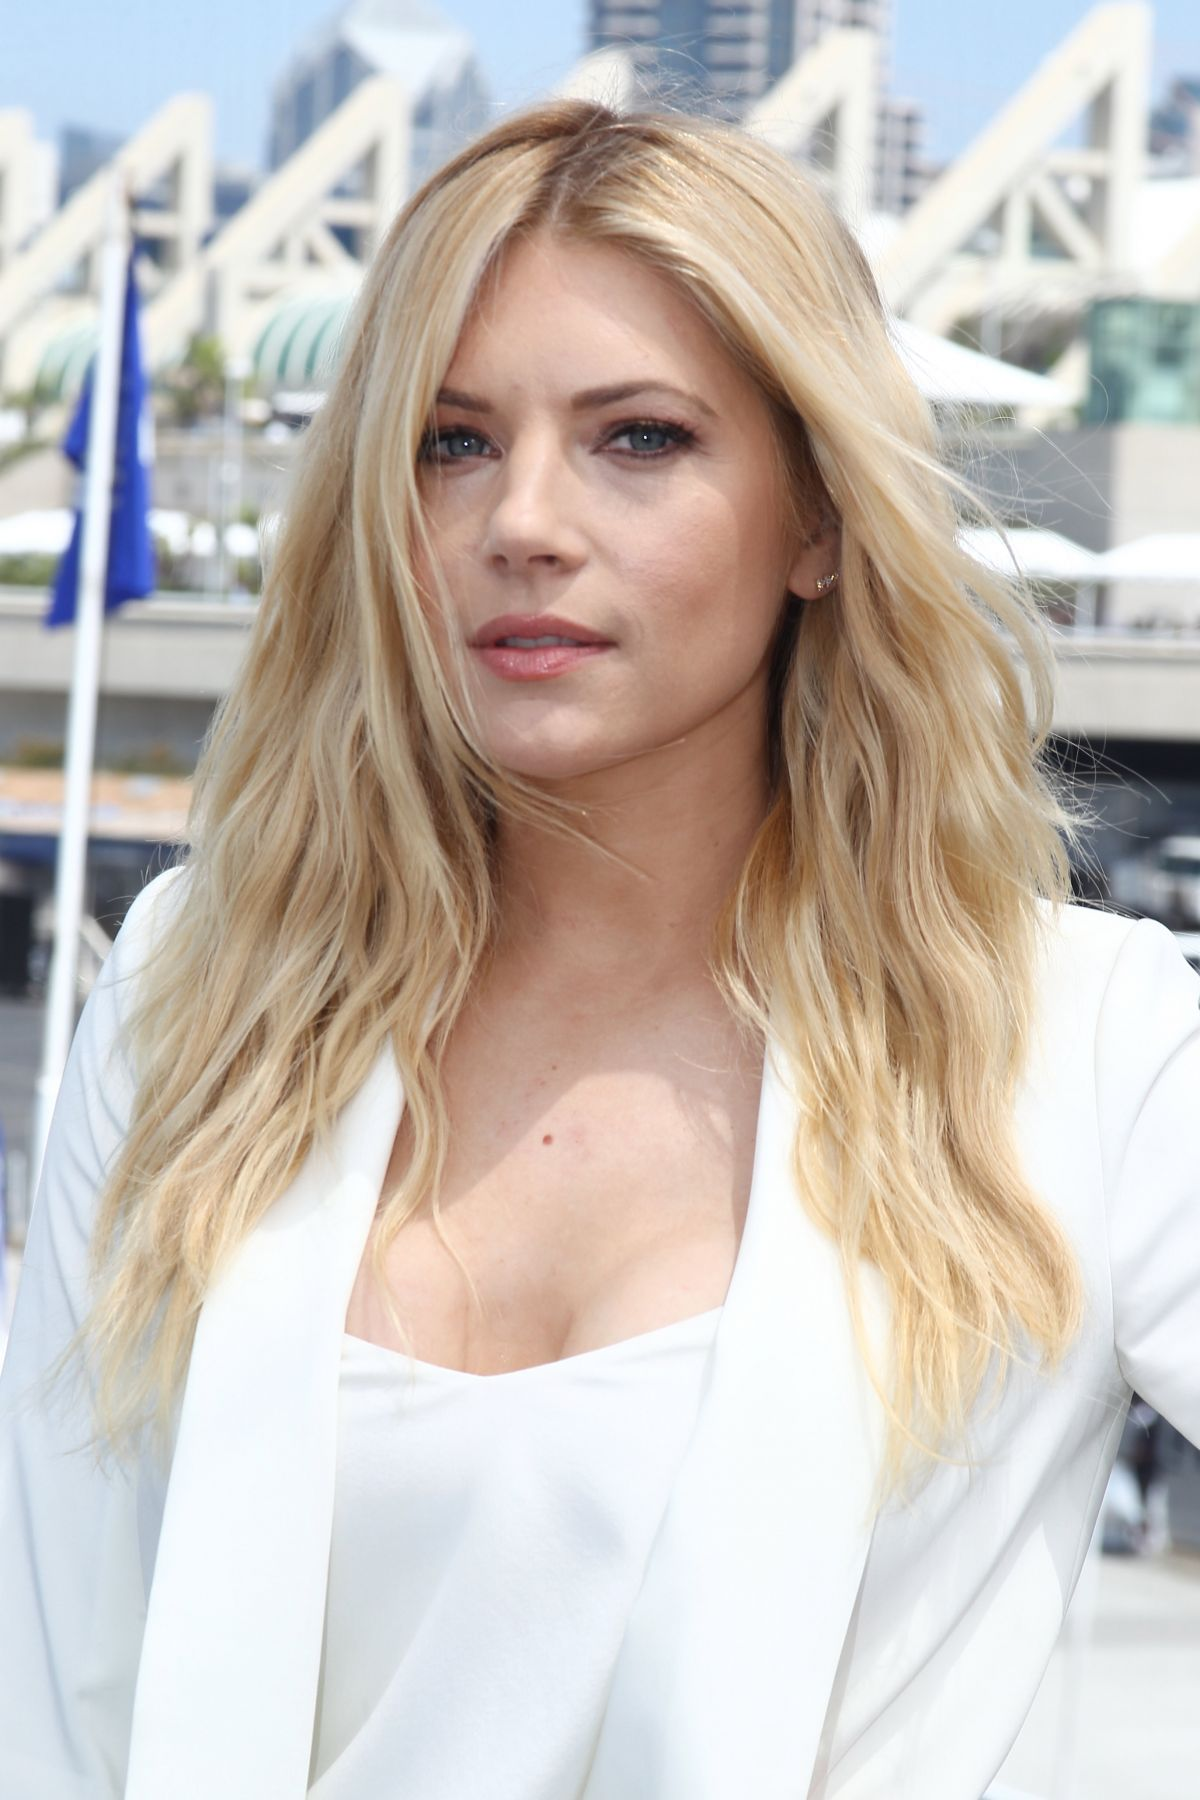 KETHERYN WINNICK at #imdboat at Comic-con International 2017 in San Diego 07/21/2017